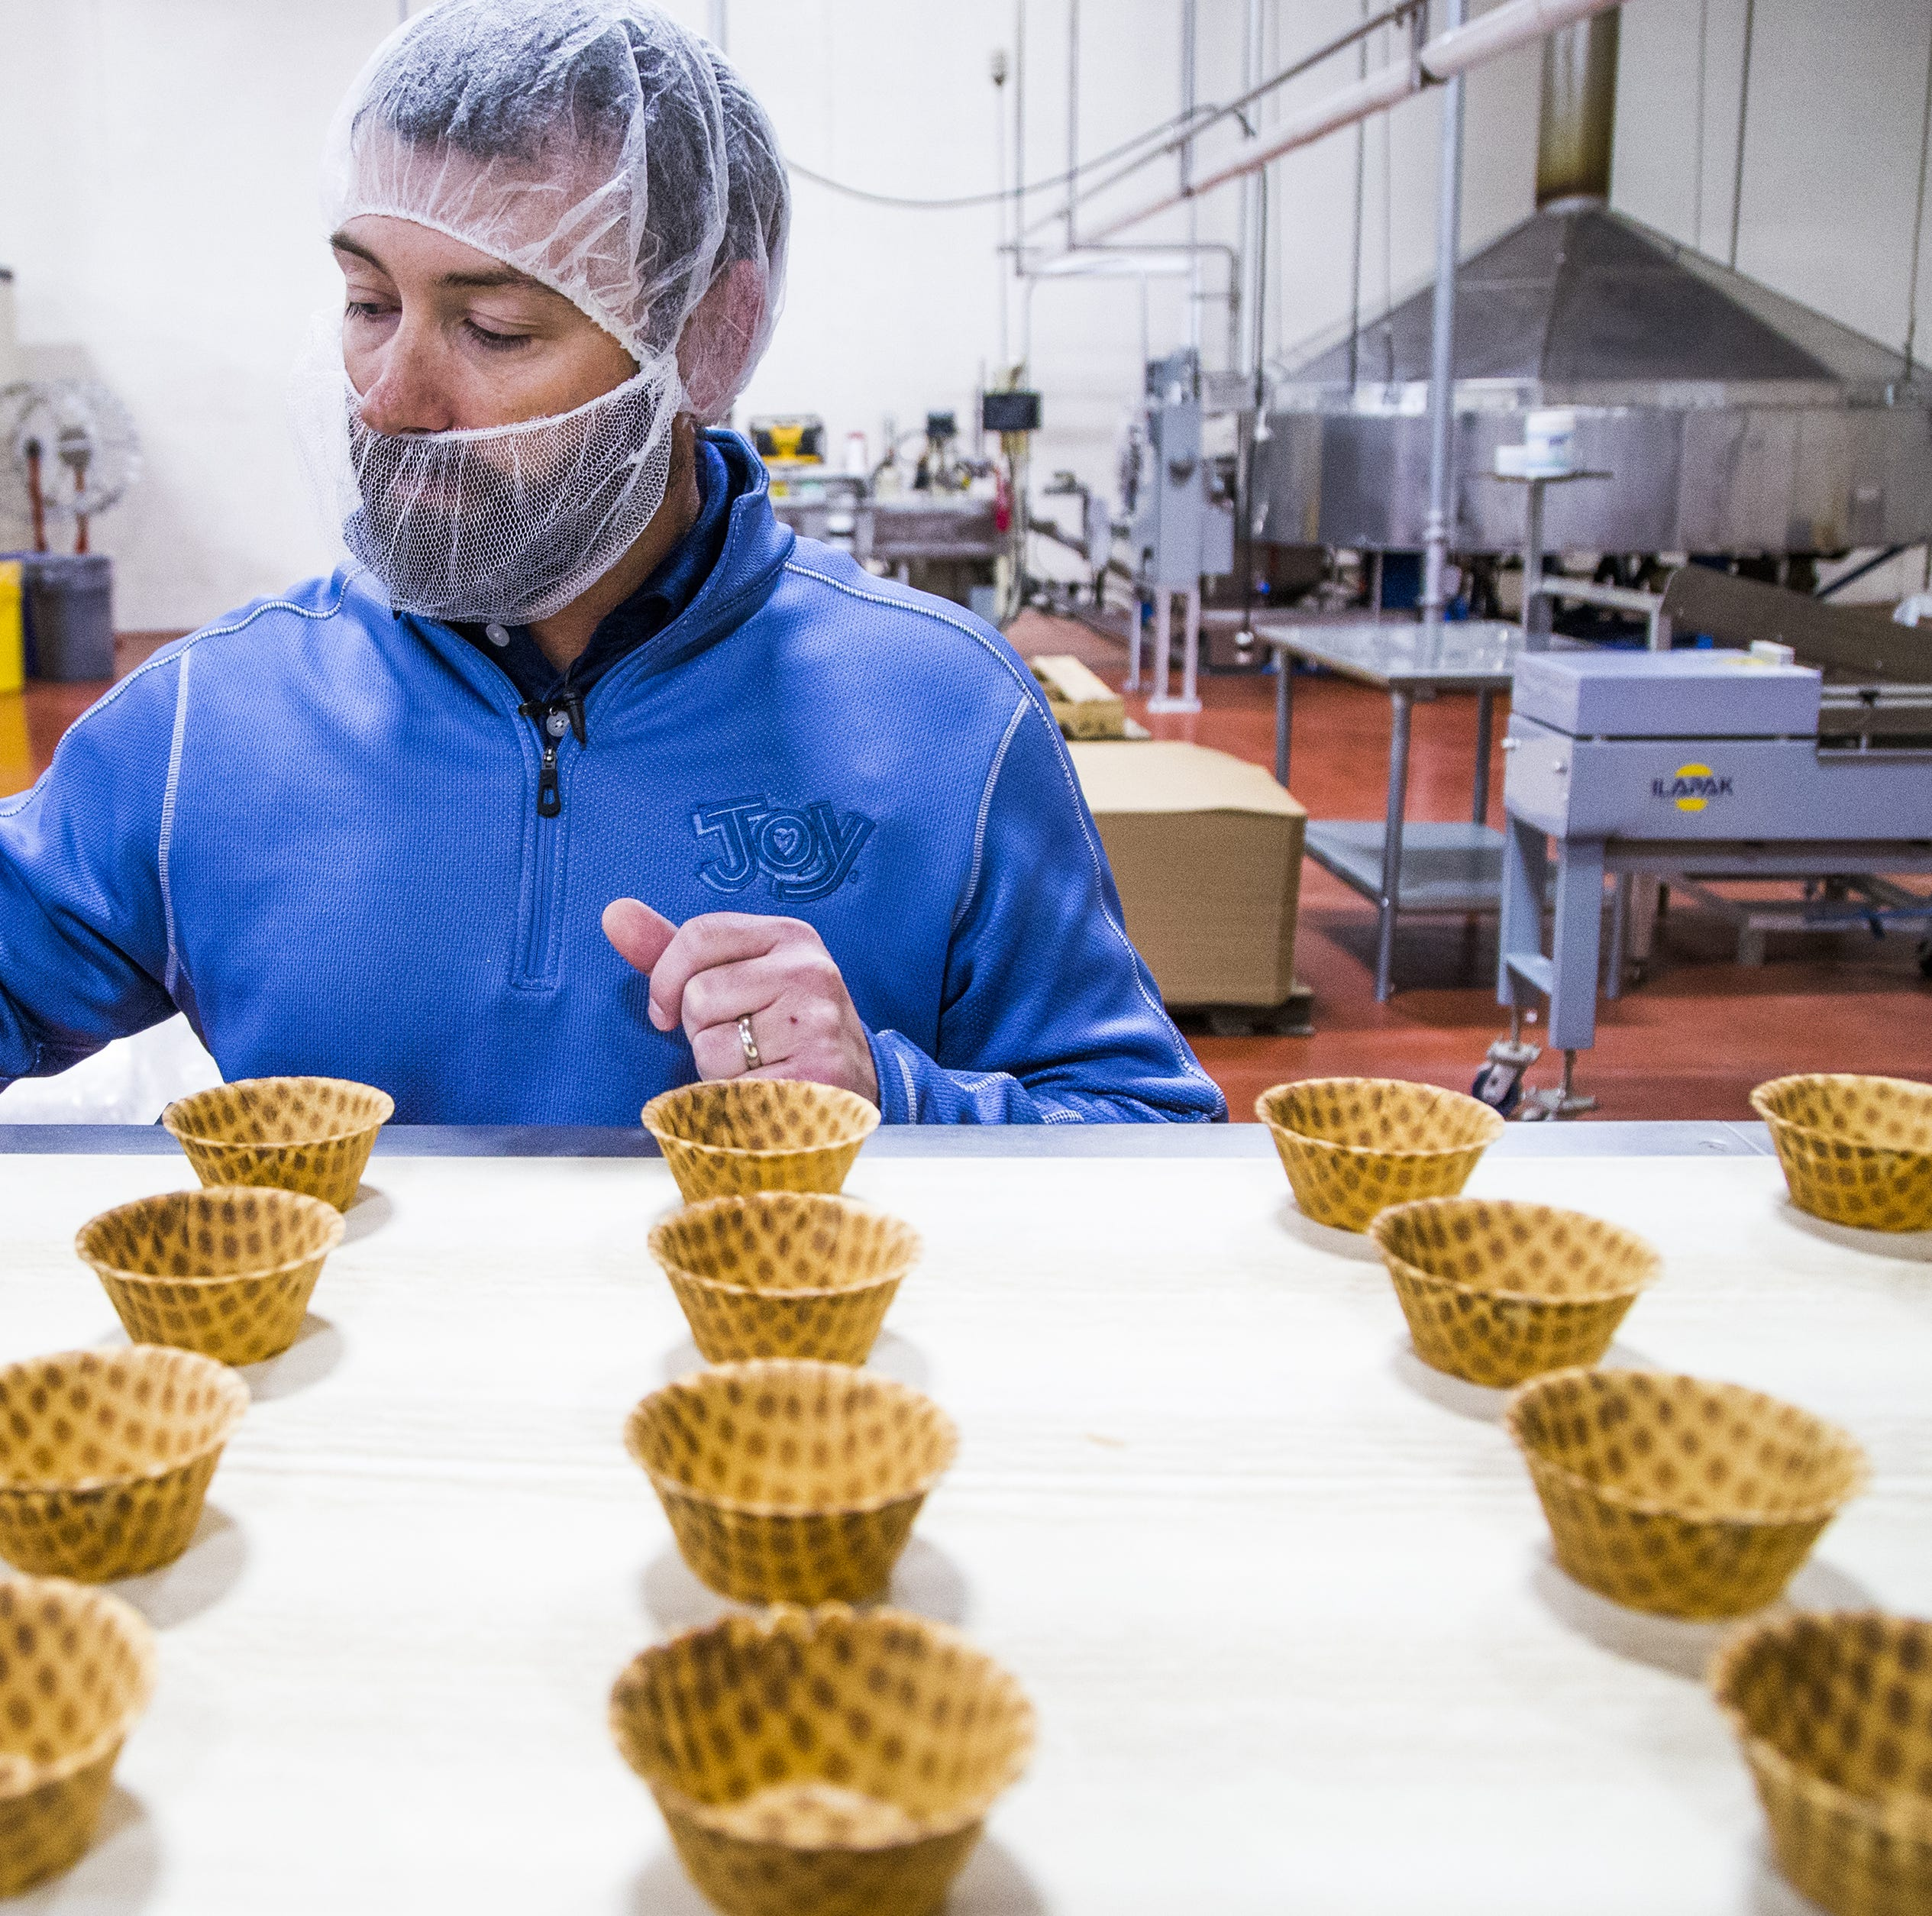 Behind the scenes: Joy Cone in Flagstaff, world's largest ice cream cone manufacturer